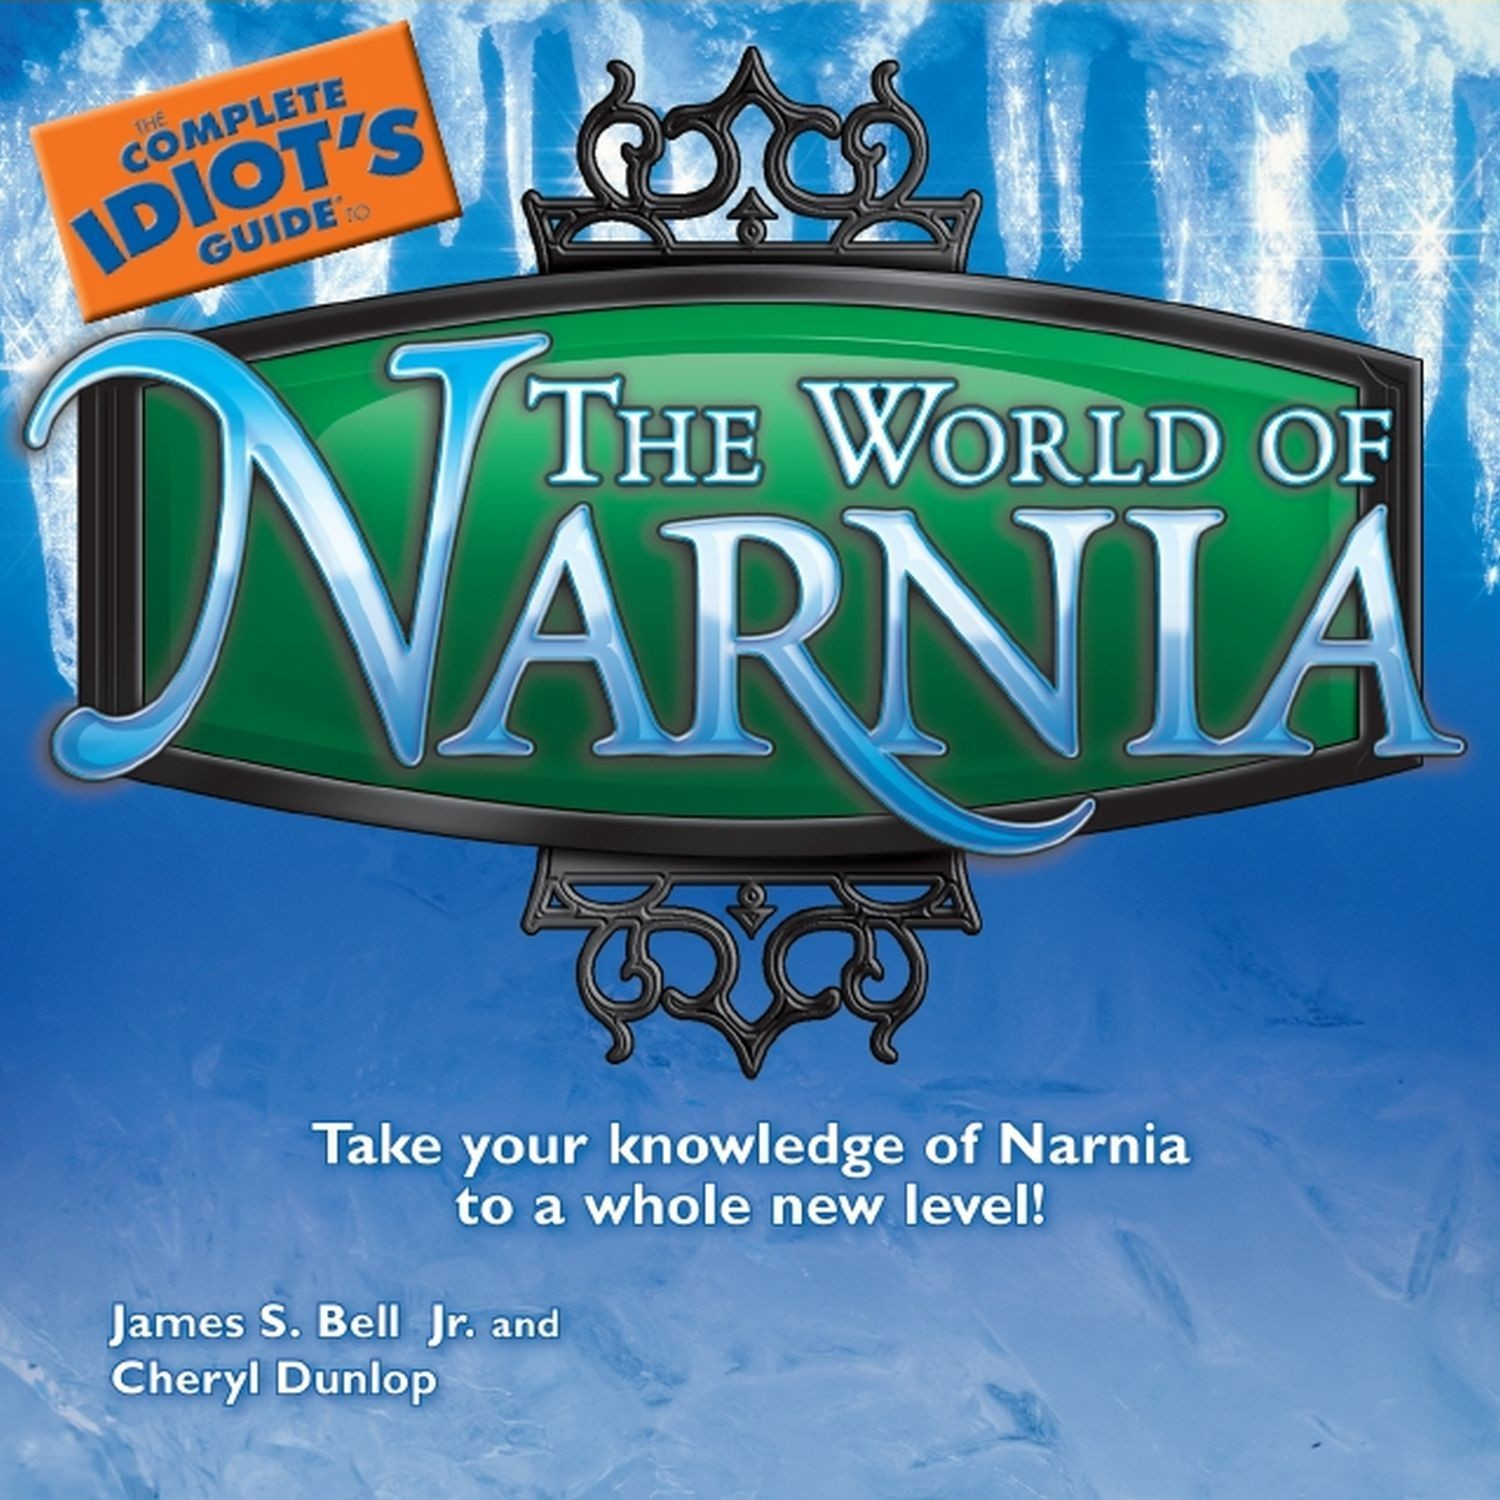 Printable The Complete Idiot's Guide to the World of Narnia Audiobook Cover Art